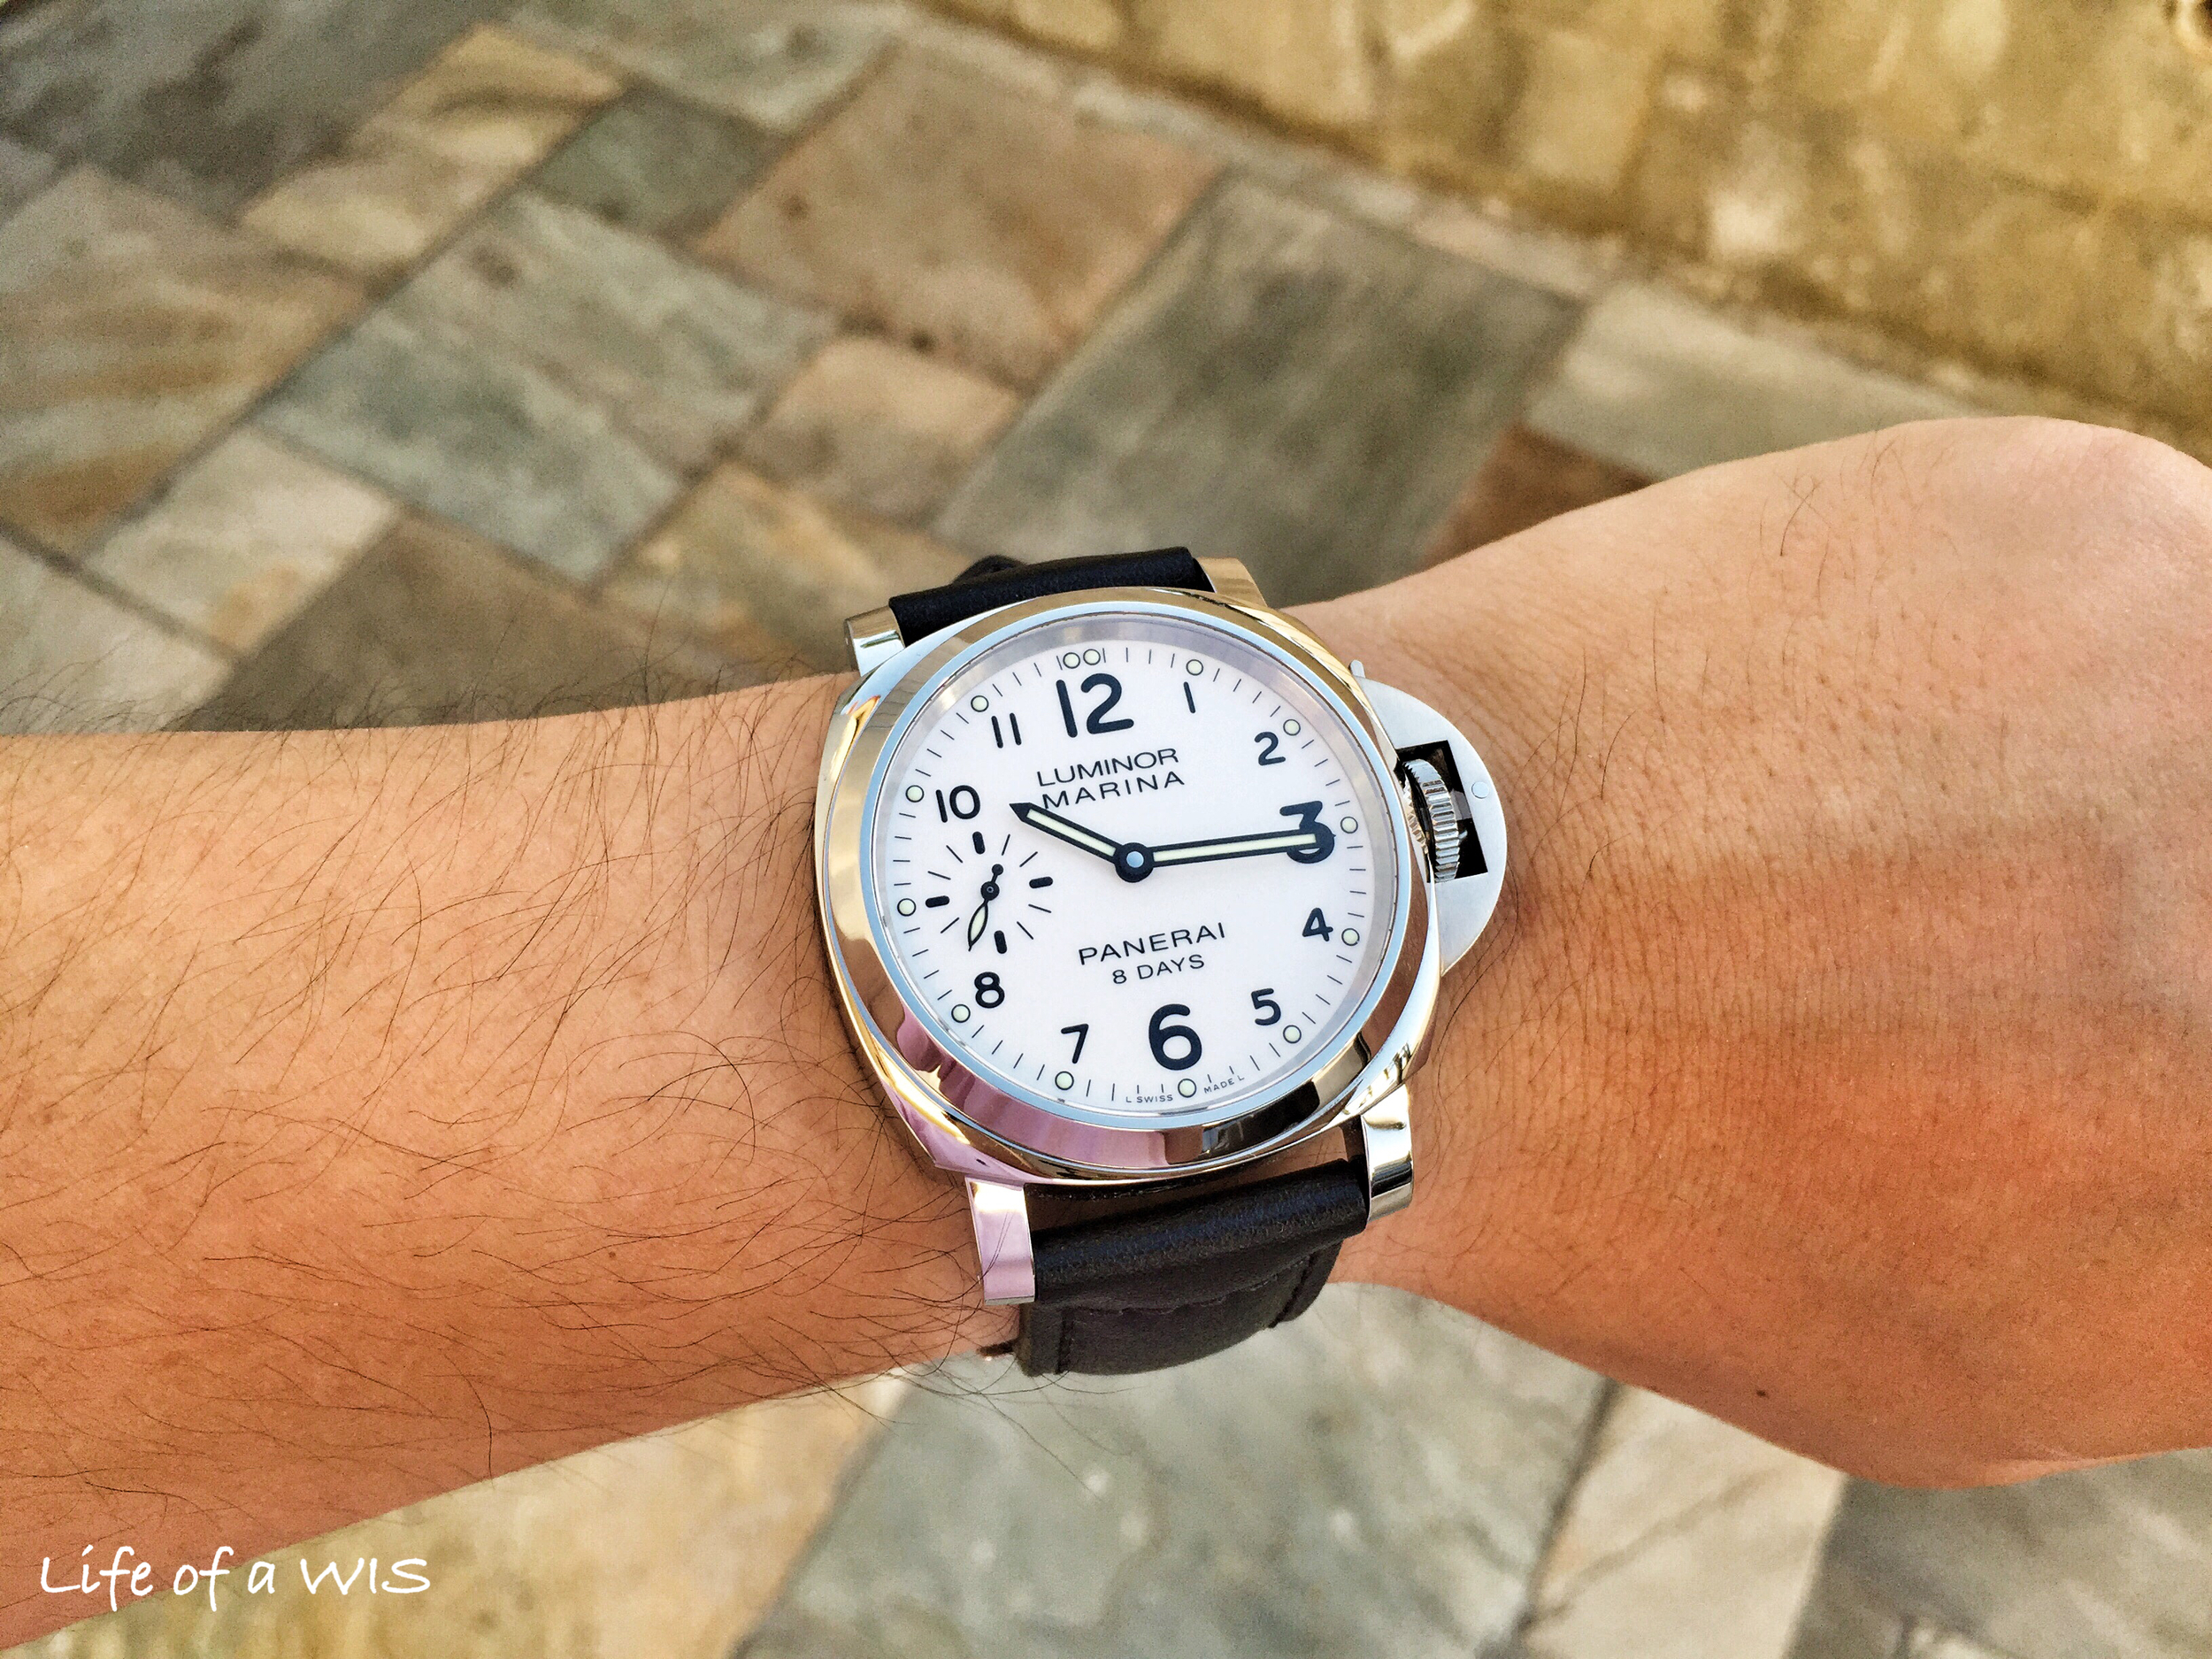 The white dial looks fantastic on the wrist!